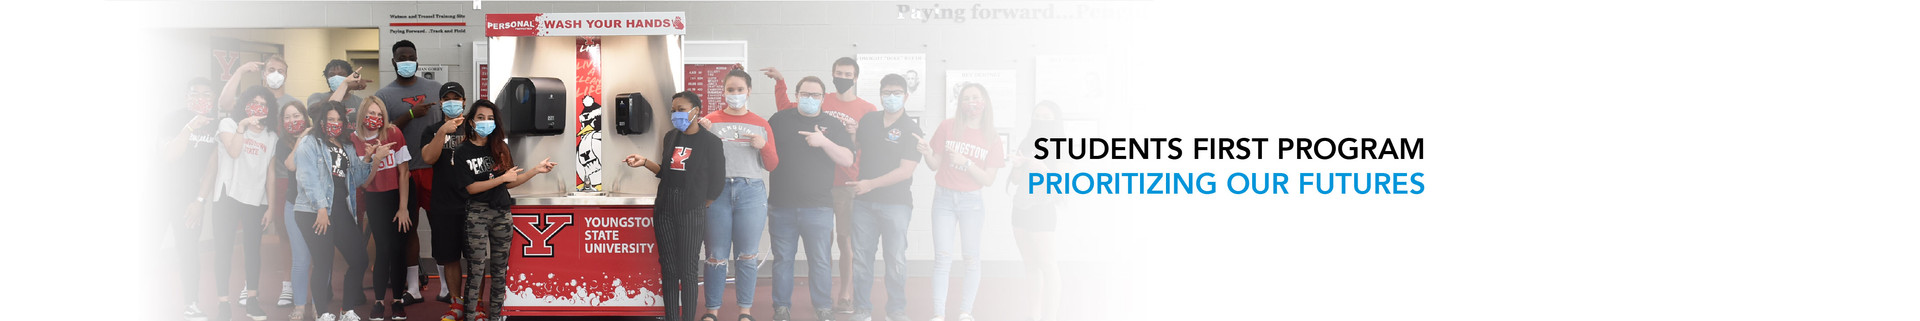 Students First Program